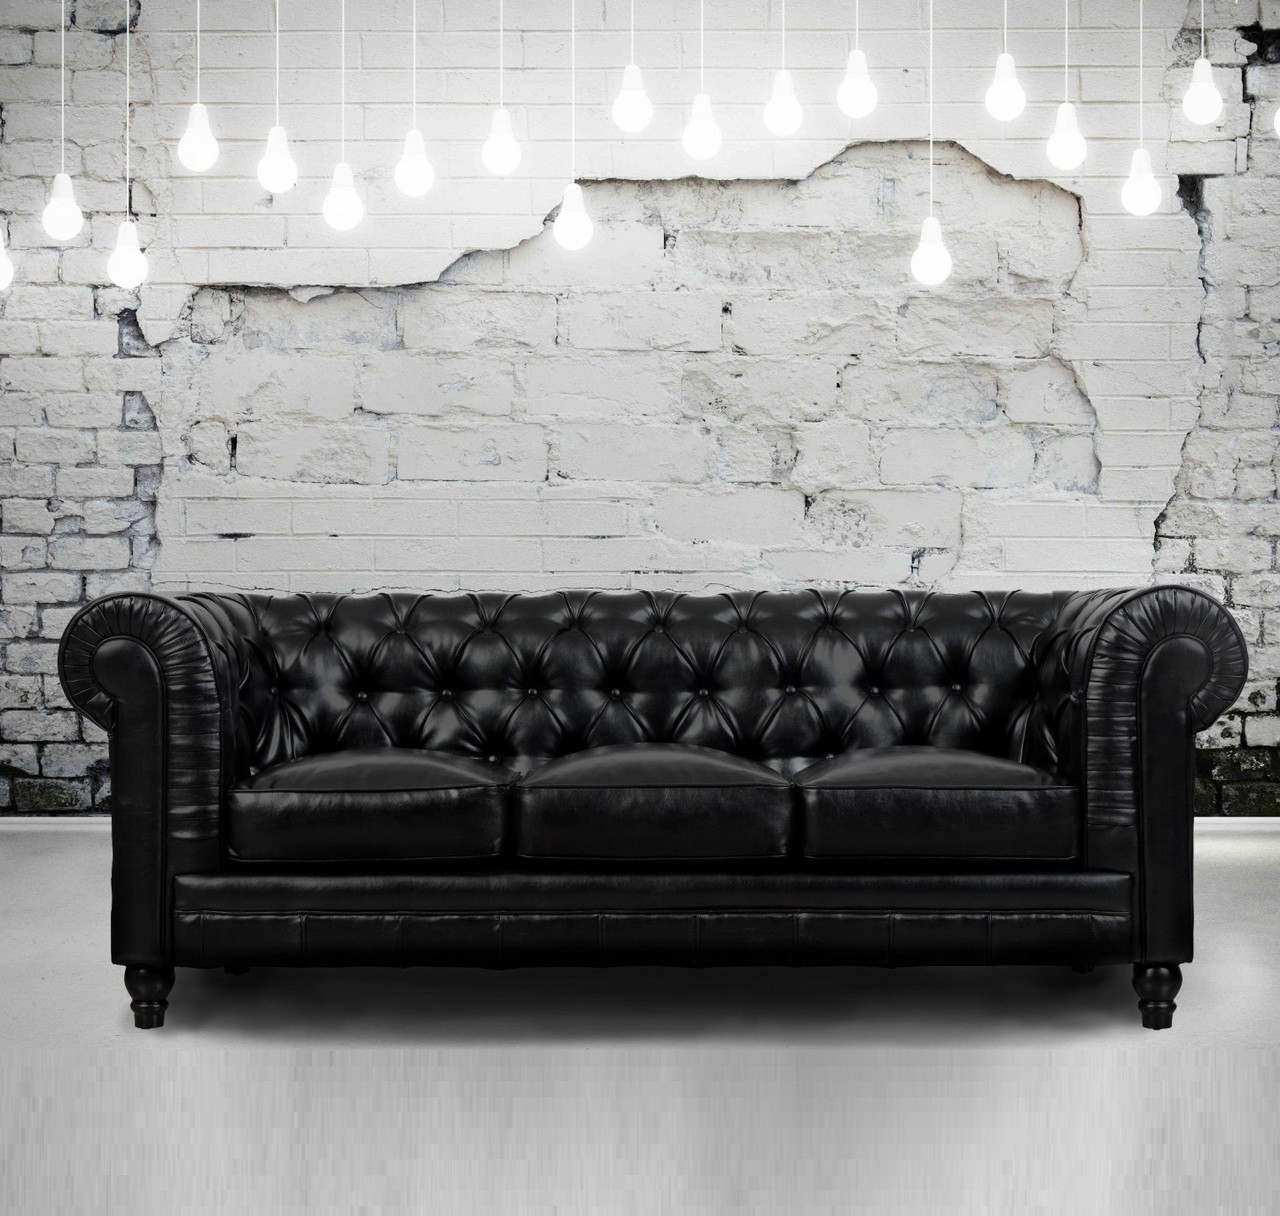 Zahara Tufted Black Leather Chesterfield Sofa | Zin Home